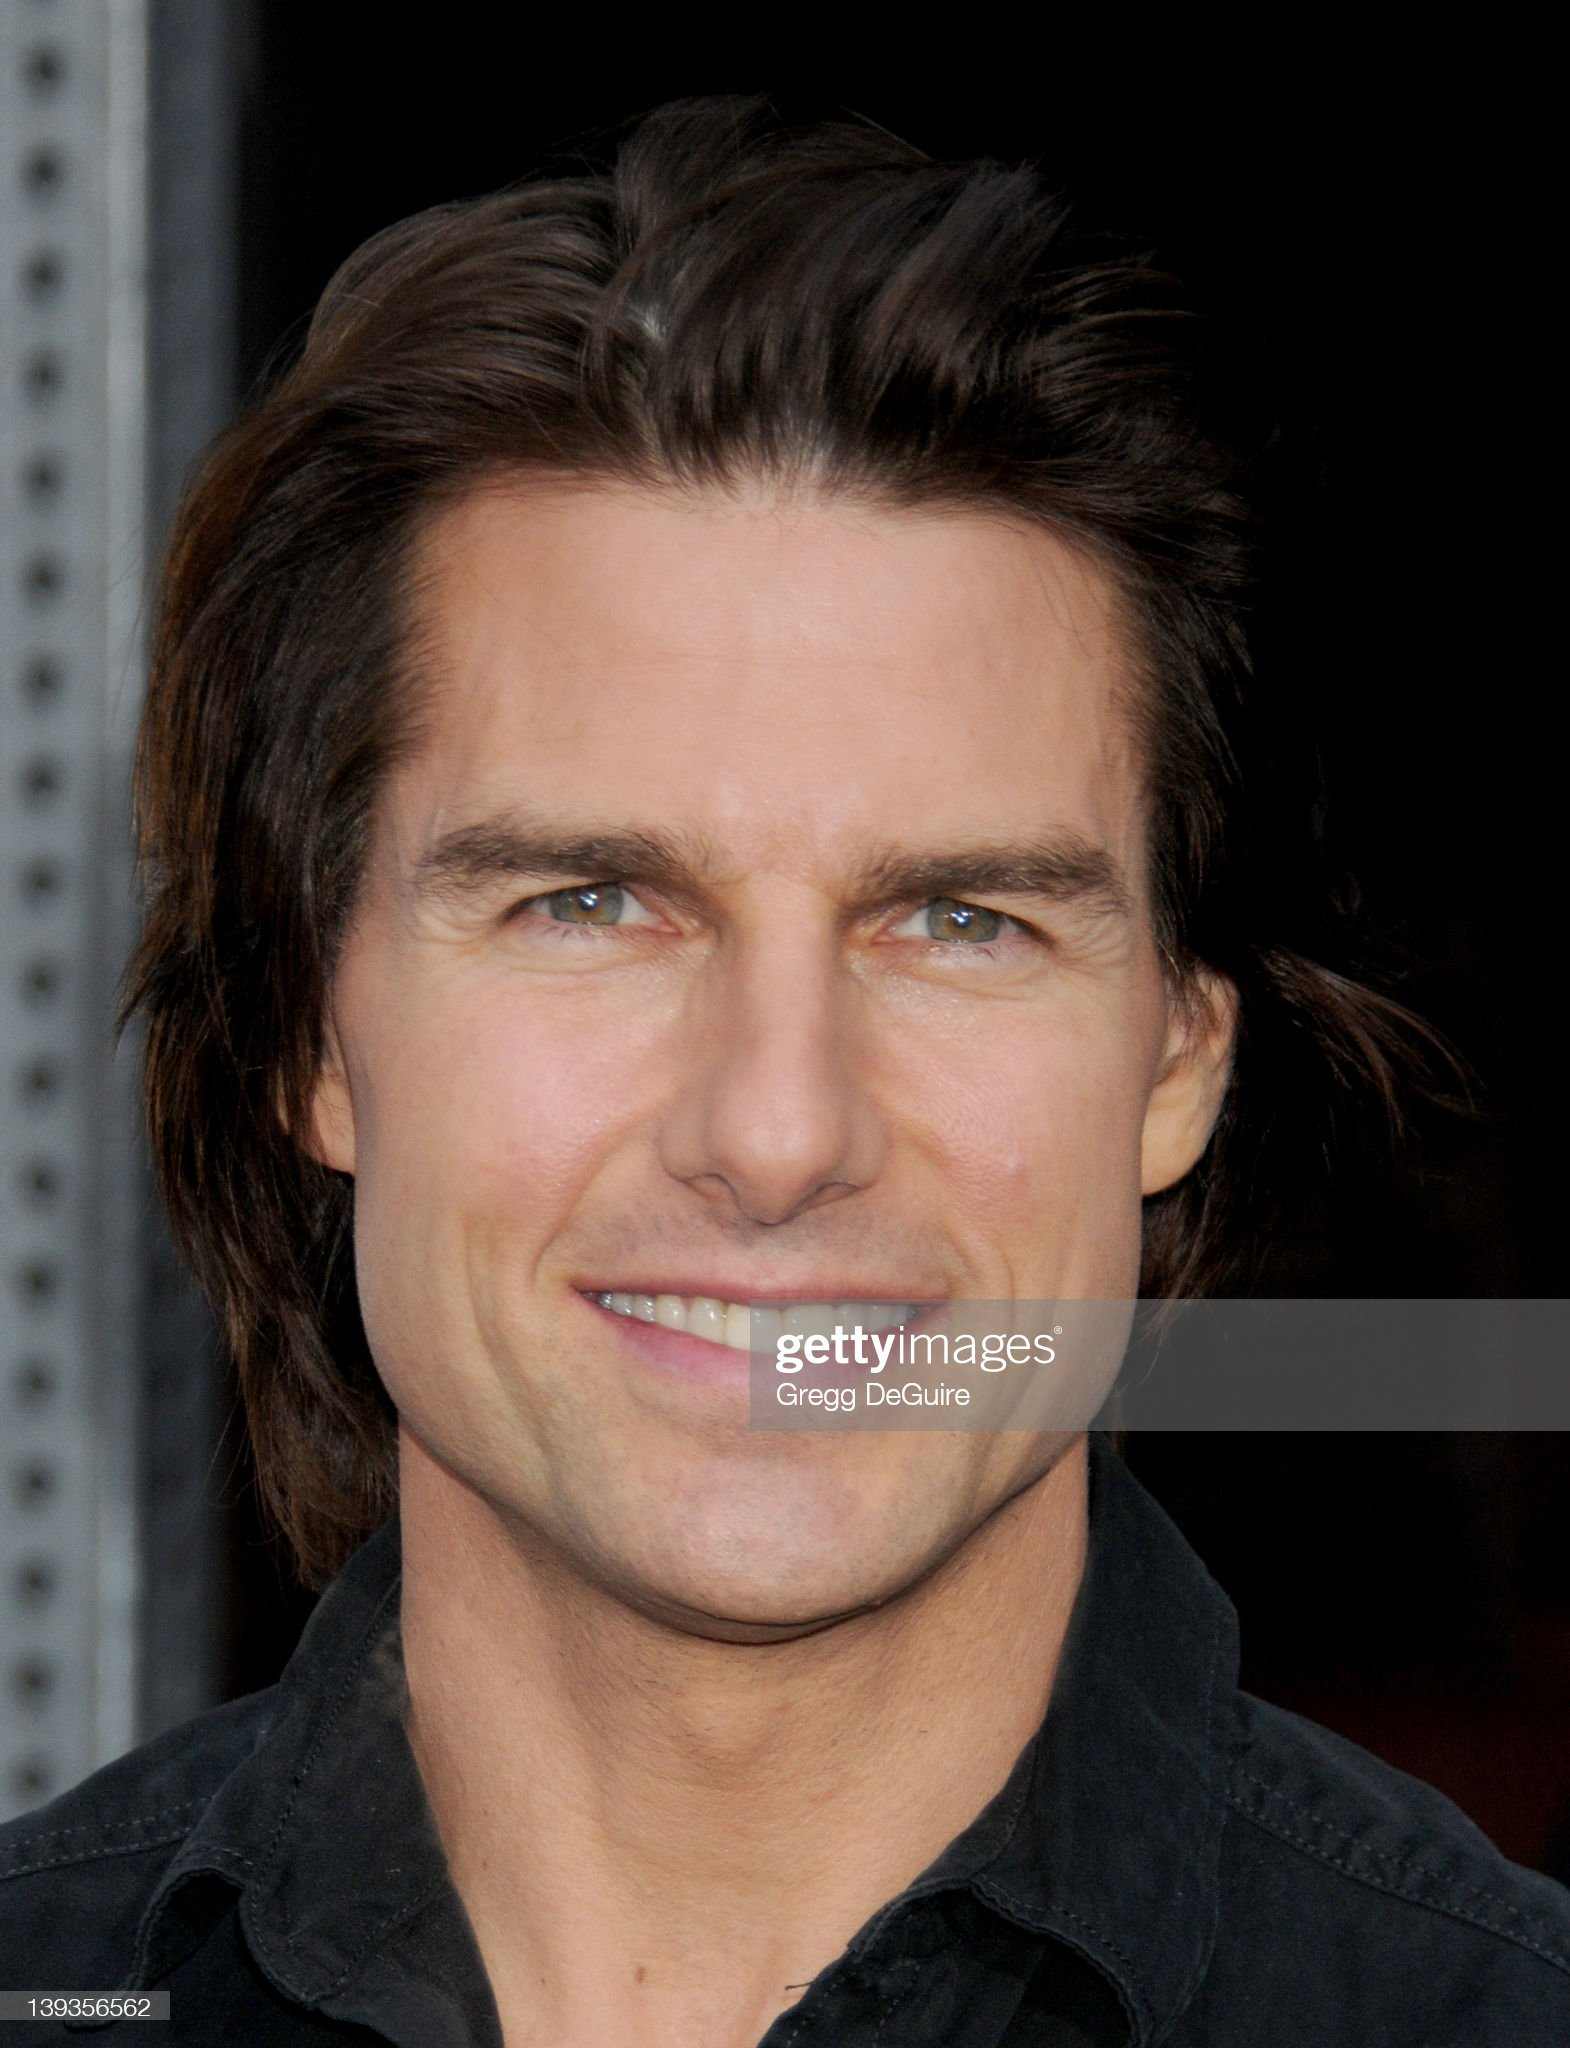 Tom Cruise (Galería de fotos) Tom-cruise-arrives-to-the-los-angeles-premiere-of-super-8-at-the-picture-id139356562?s=2048x2048